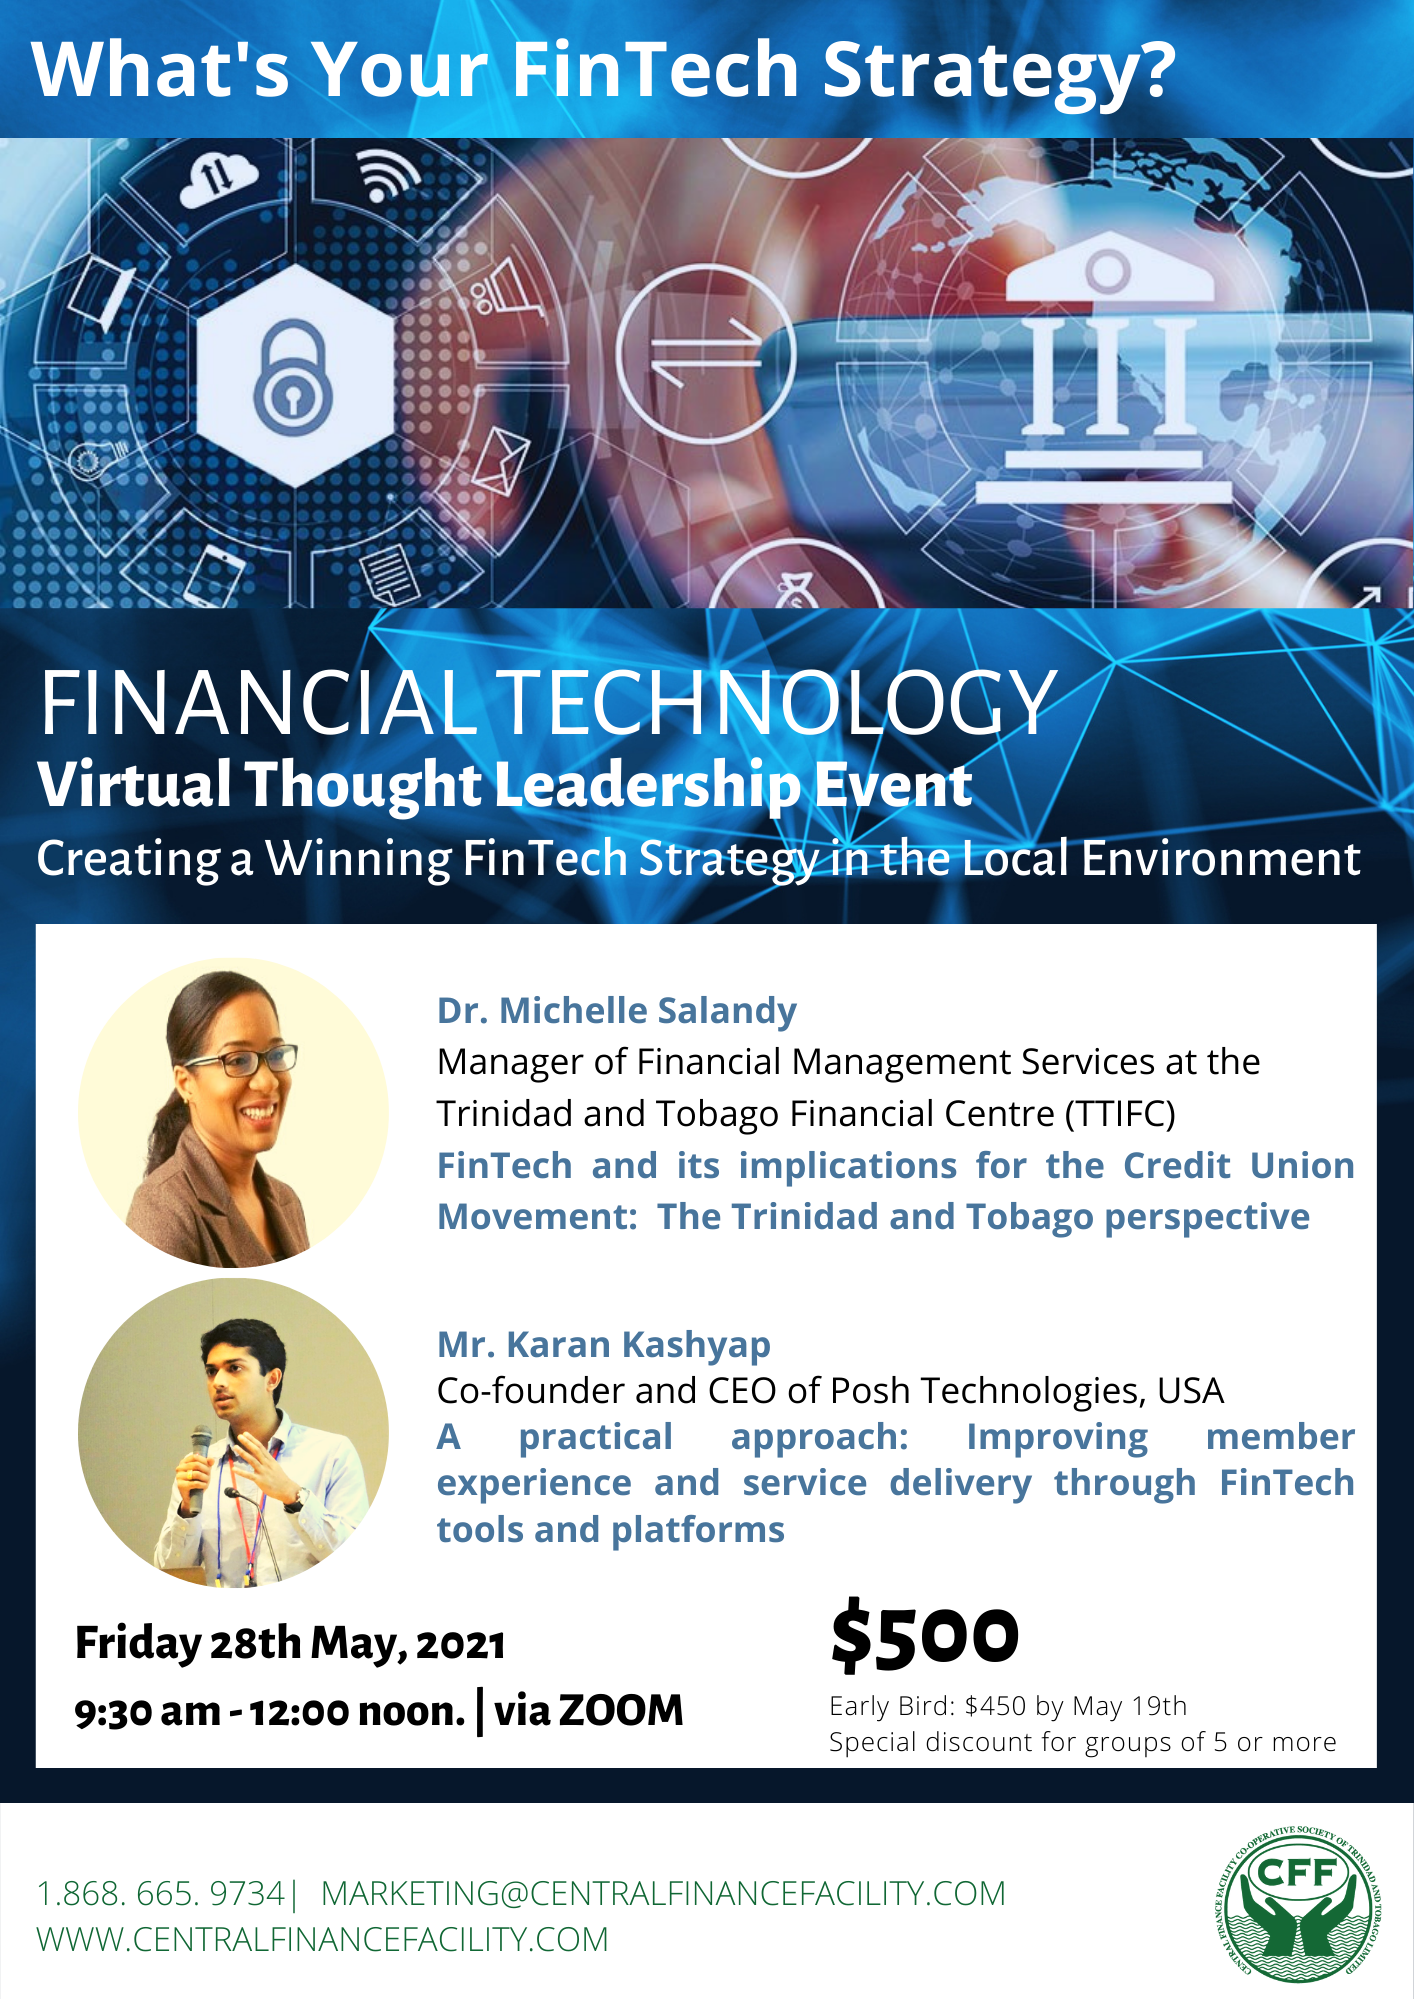 Financial Technology Thought Leadership